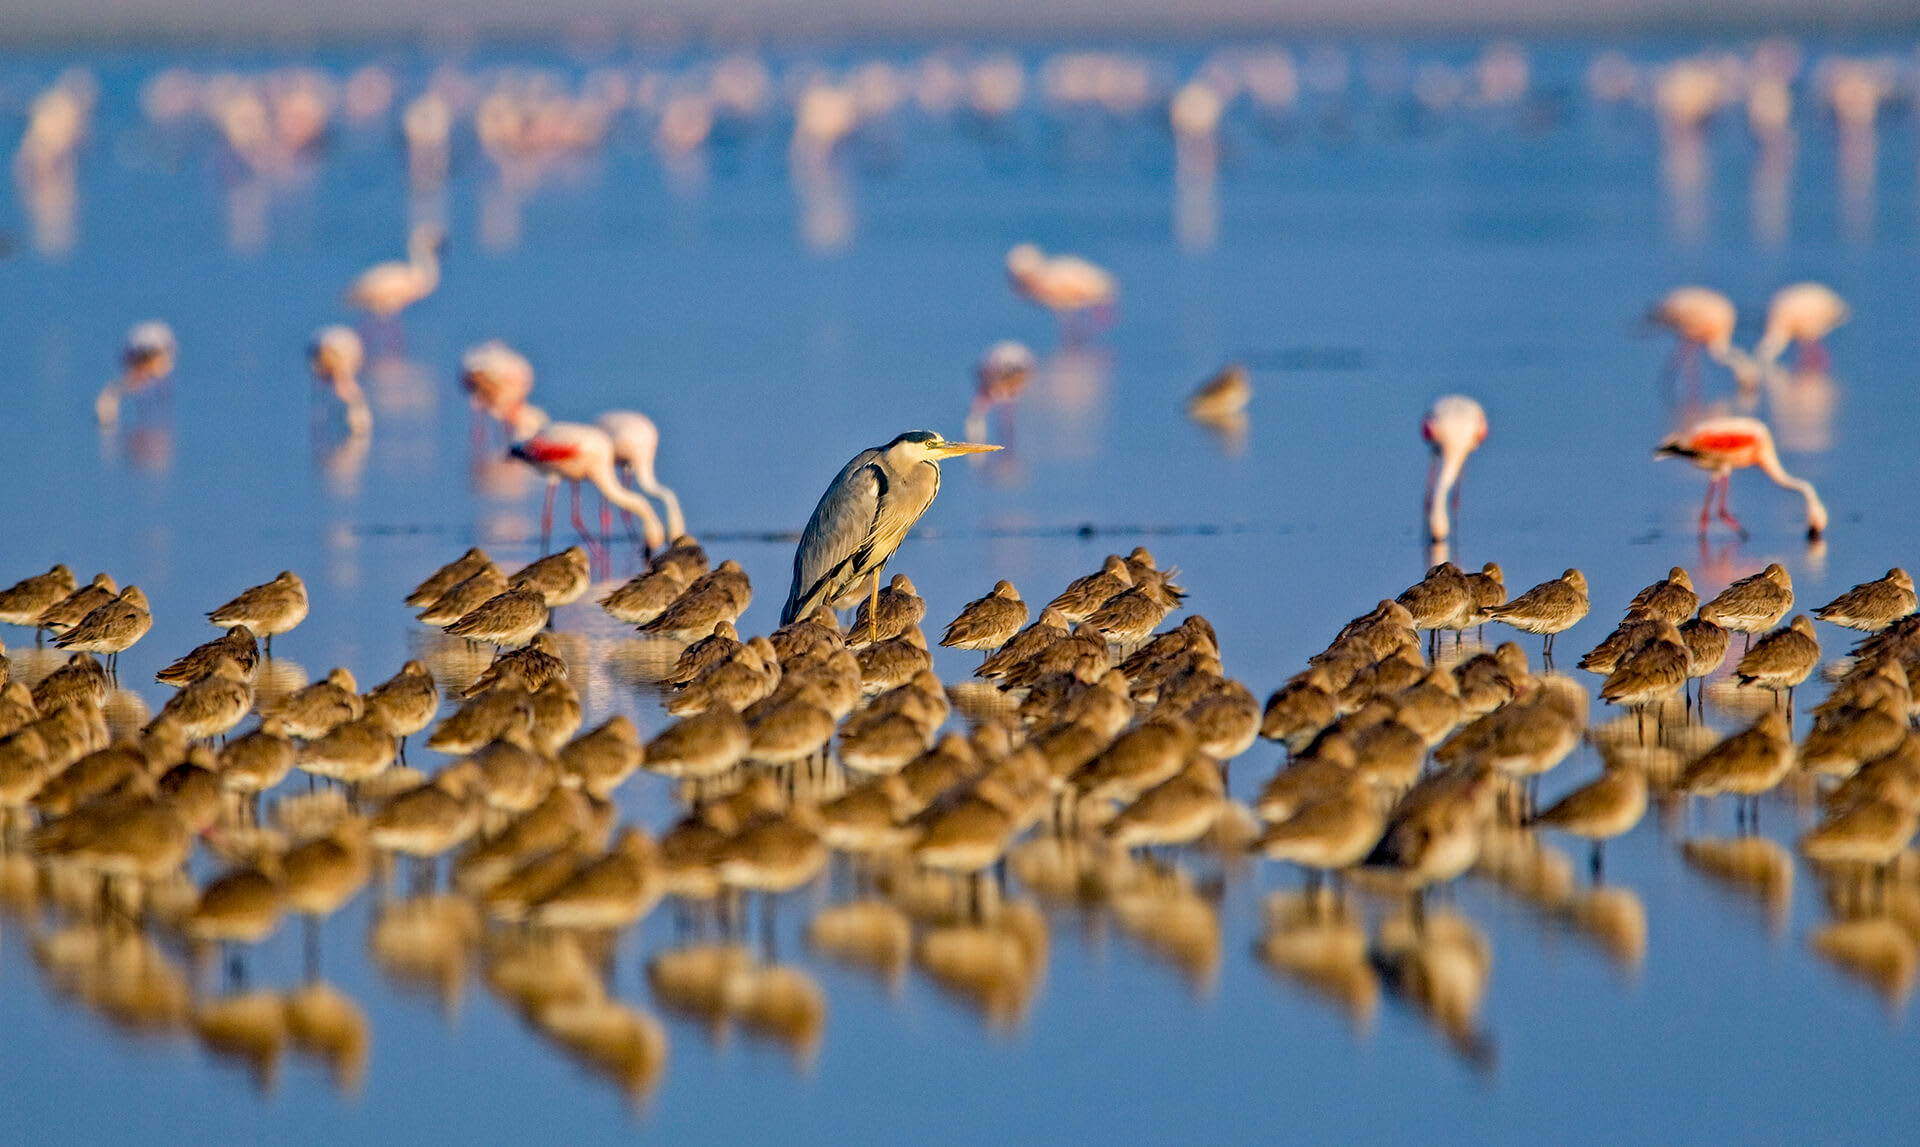 Despite their temporary nature, the water bodies in the Little Rann of Kutch are hotbeds of activity, inhabited by numerous species in proximity. In the image on top, a grey heron surveys the landscape, surrounded by godwits and flamingos. The region also hosts the yellow-wattled lapwing (above left) and the sociable lapwing (above right).